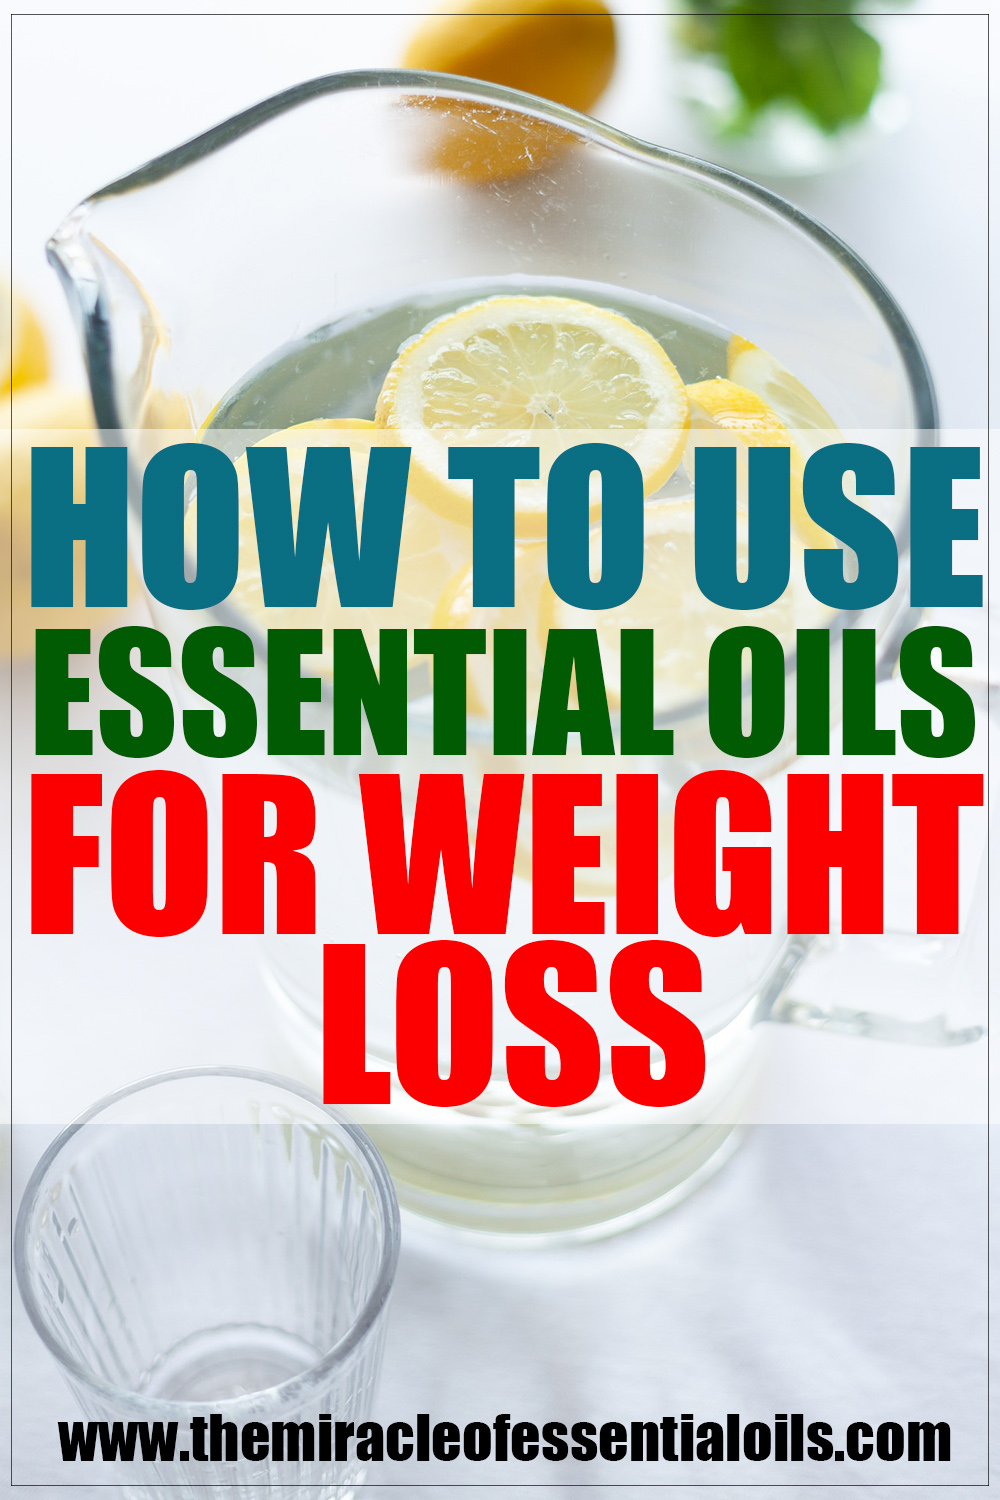 You already know that essential oils have aromatherapy benefits that actually cause chemical effects on the brain when inhaled - but do you know exactly how to use essential oils for weight loss? If you want remarkable results, you need to know exactly how to use essential oils for weight loss. That's what we're about to find out in this article!